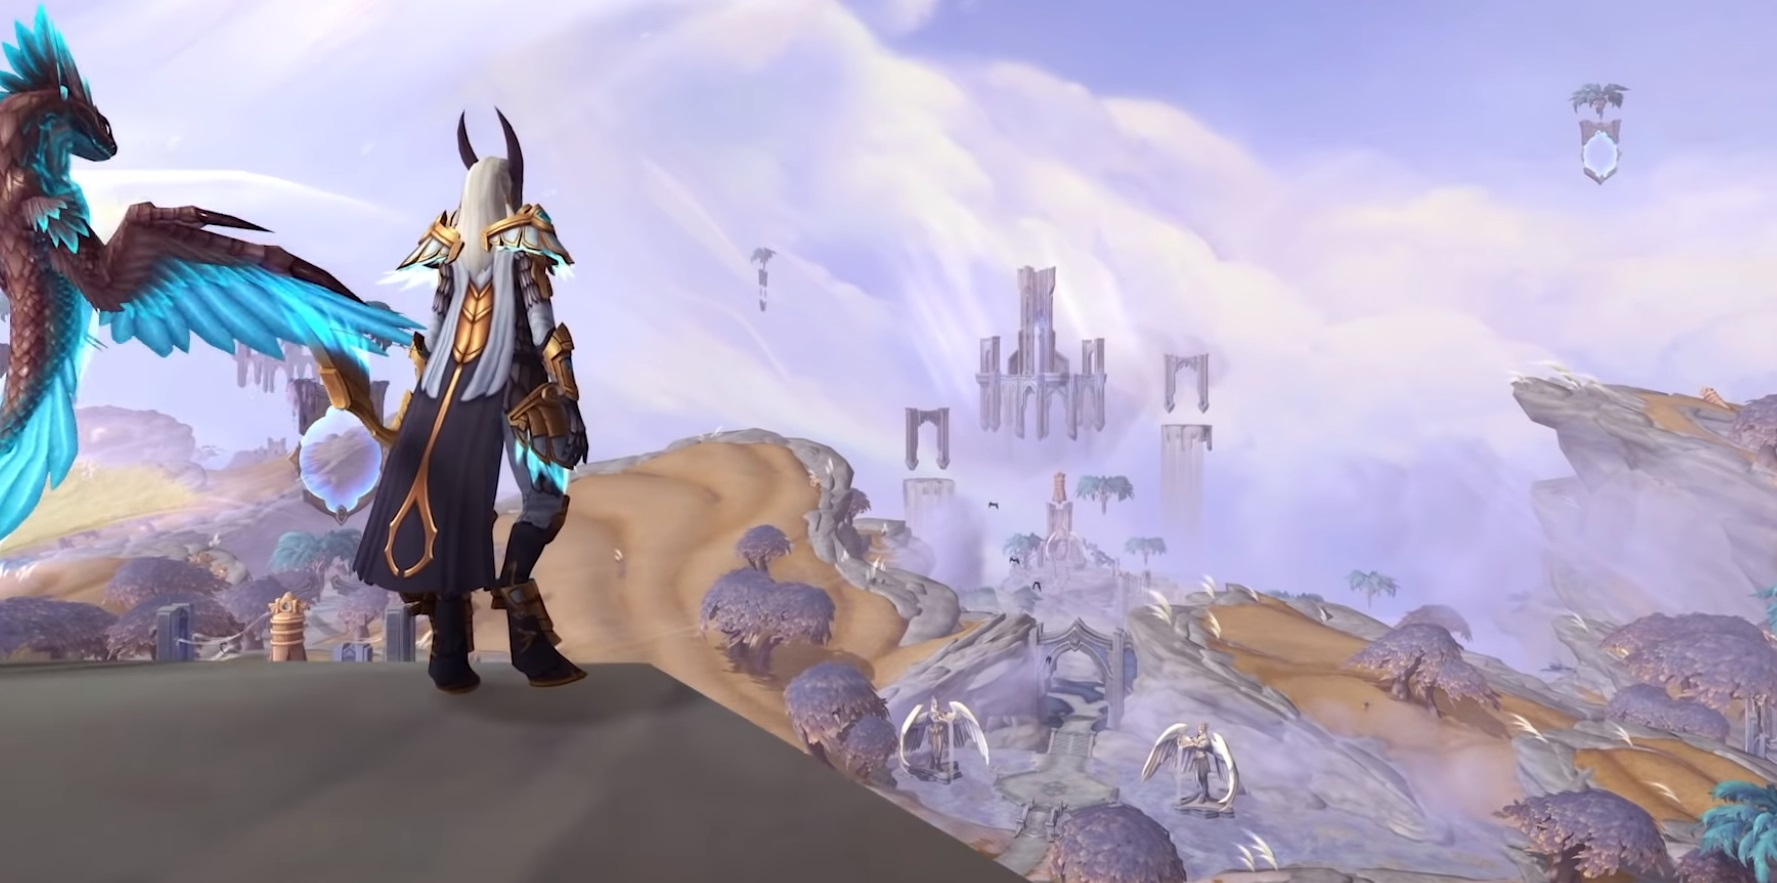 Here's a full rundown of World of Warcraft Shadowlands' Pre-Patch, coming October 13 screenshot